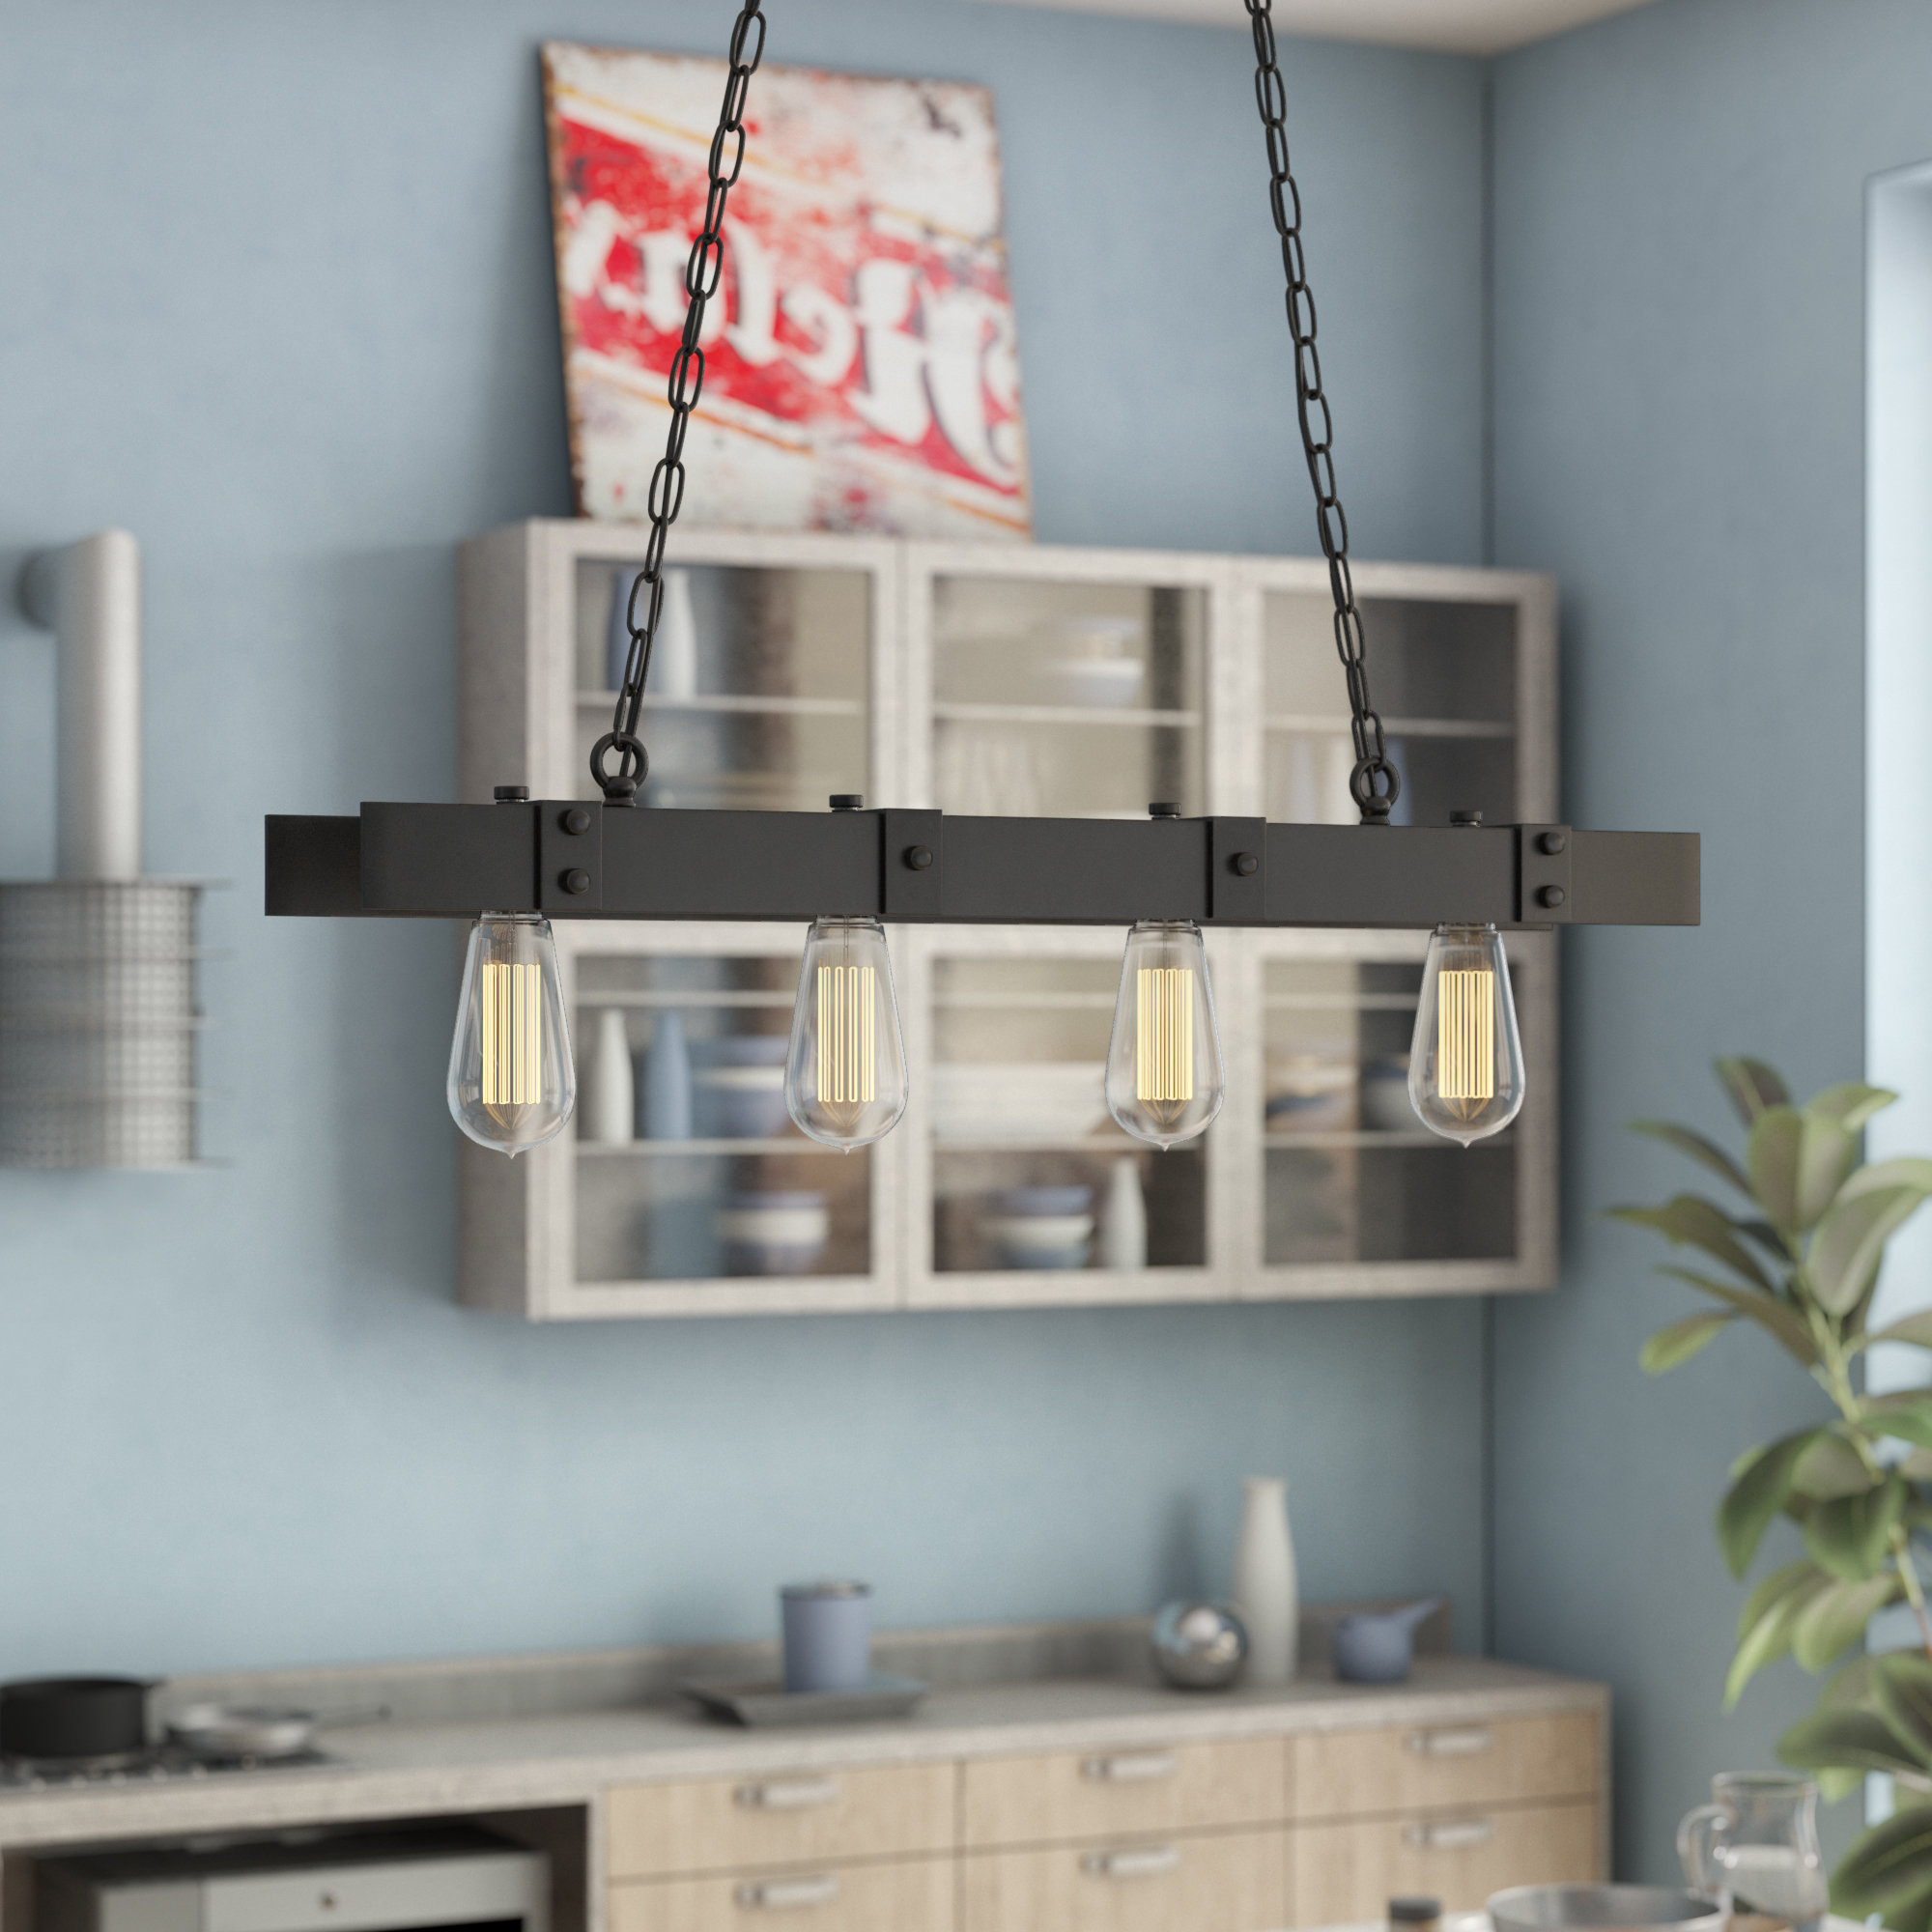 Schutt 4 Light Kitchen Island Pendants Within Widely Used Kitchen Island Williston Forge Pendant Lighting You'll Love (View 4 of 20)